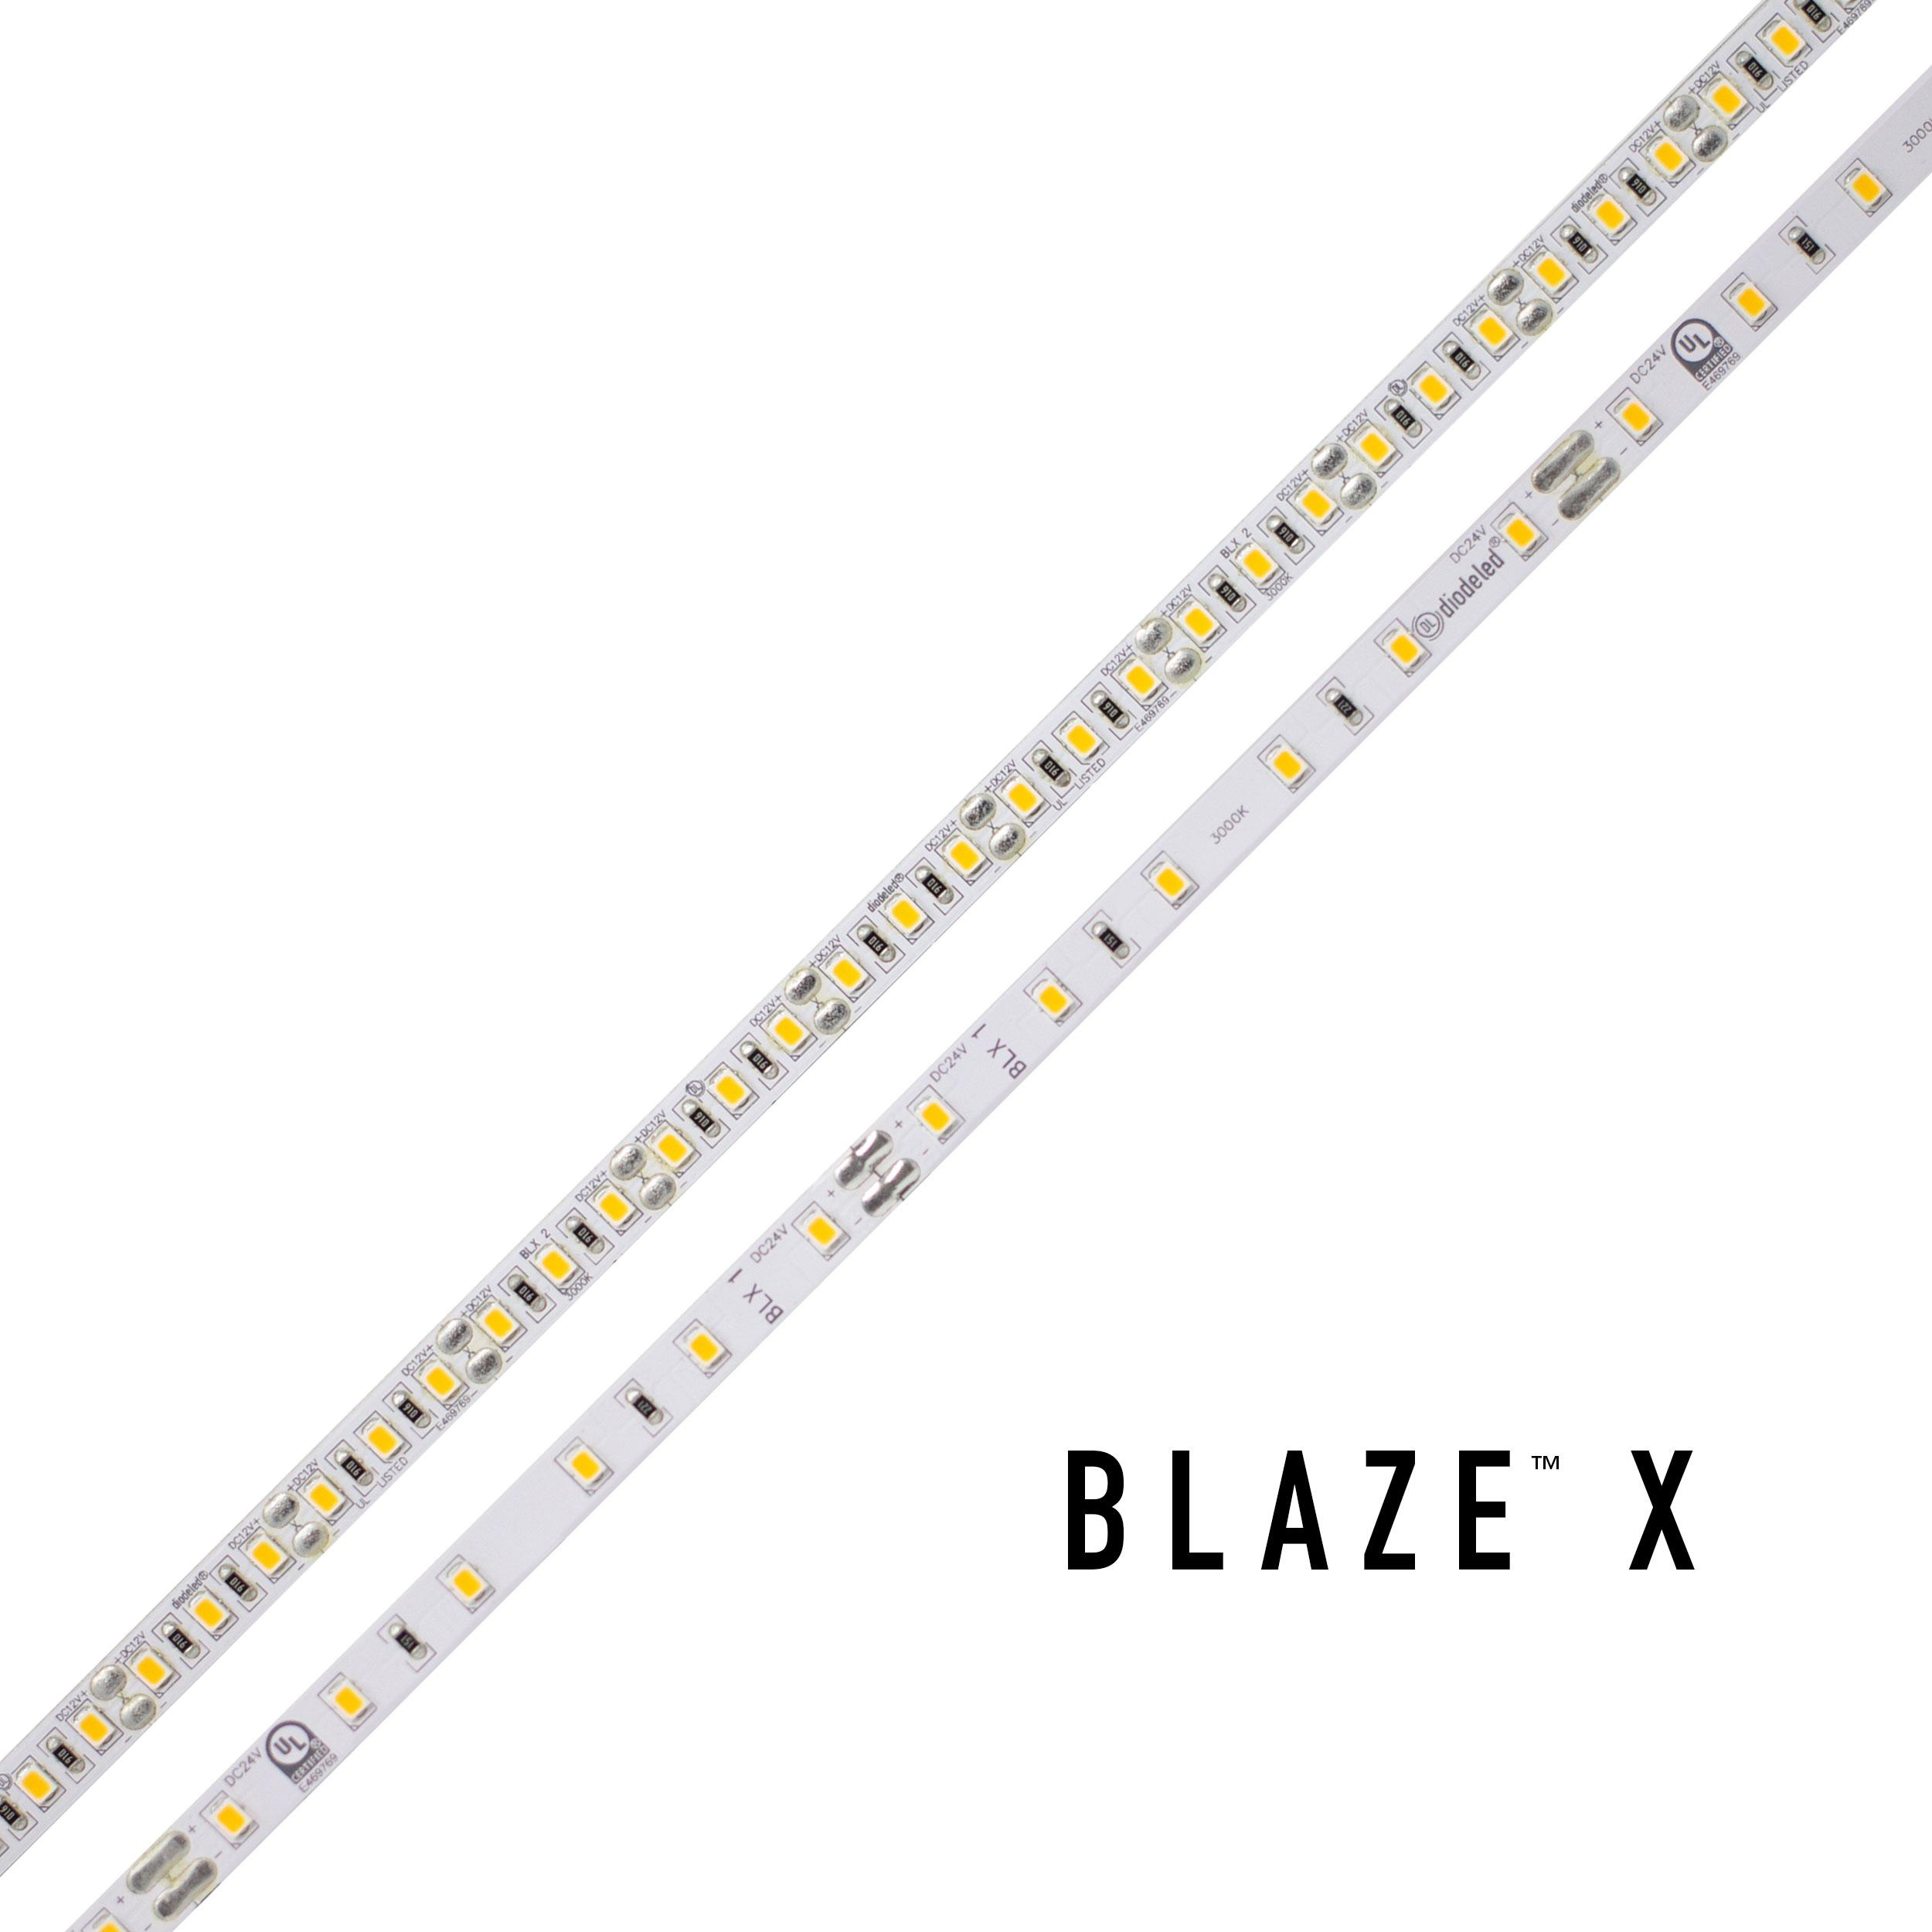 BLAZE™ X LED Tape Light